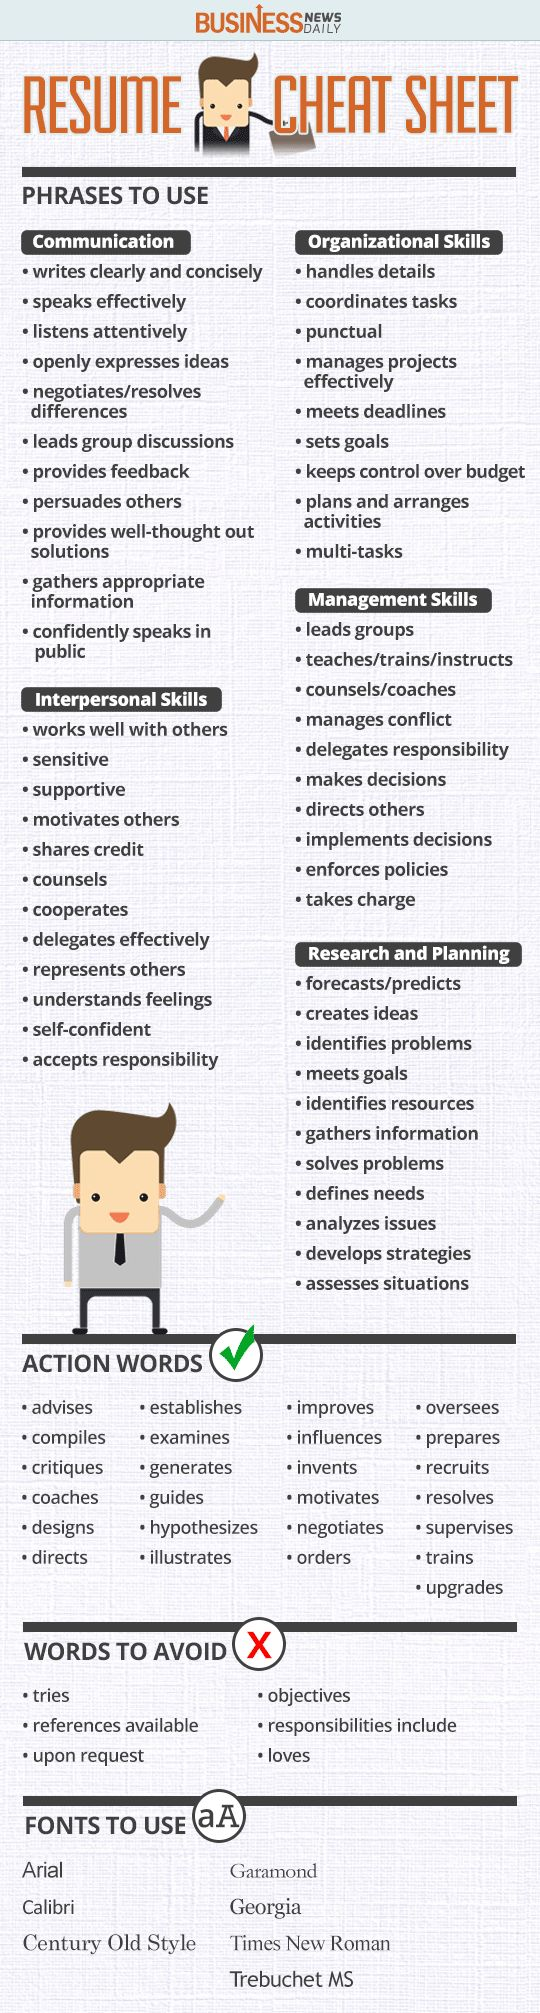 Opposenewapstandardsus  Terrific  Ideas About Resume On Pinterest  Cv Format Resume Cv And  With Magnificent Resume Cheat Sheet Infographic Andrews Almost Done With A Complete Unit On Employment Which With Amazing Driver Resume Sample Also Should You Use I In A Resume In Addition Journalism Resumes And Information Systems Resume As Well As Create My Resume For Free Additionally Self Motivated Resume From Pinterestcom With Opposenewapstandardsus  Magnificent  Ideas About Resume On Pinterest  Cv Format Resume Cv And  With Amazing Resume Cheat Sheet Infographic Andrews Almost Done With A Complete Unit On Employment Which And Terrific Driver Resume Sample Also Should You Use I In A Resume In Addition Journalism Resumes From Pinterestcom